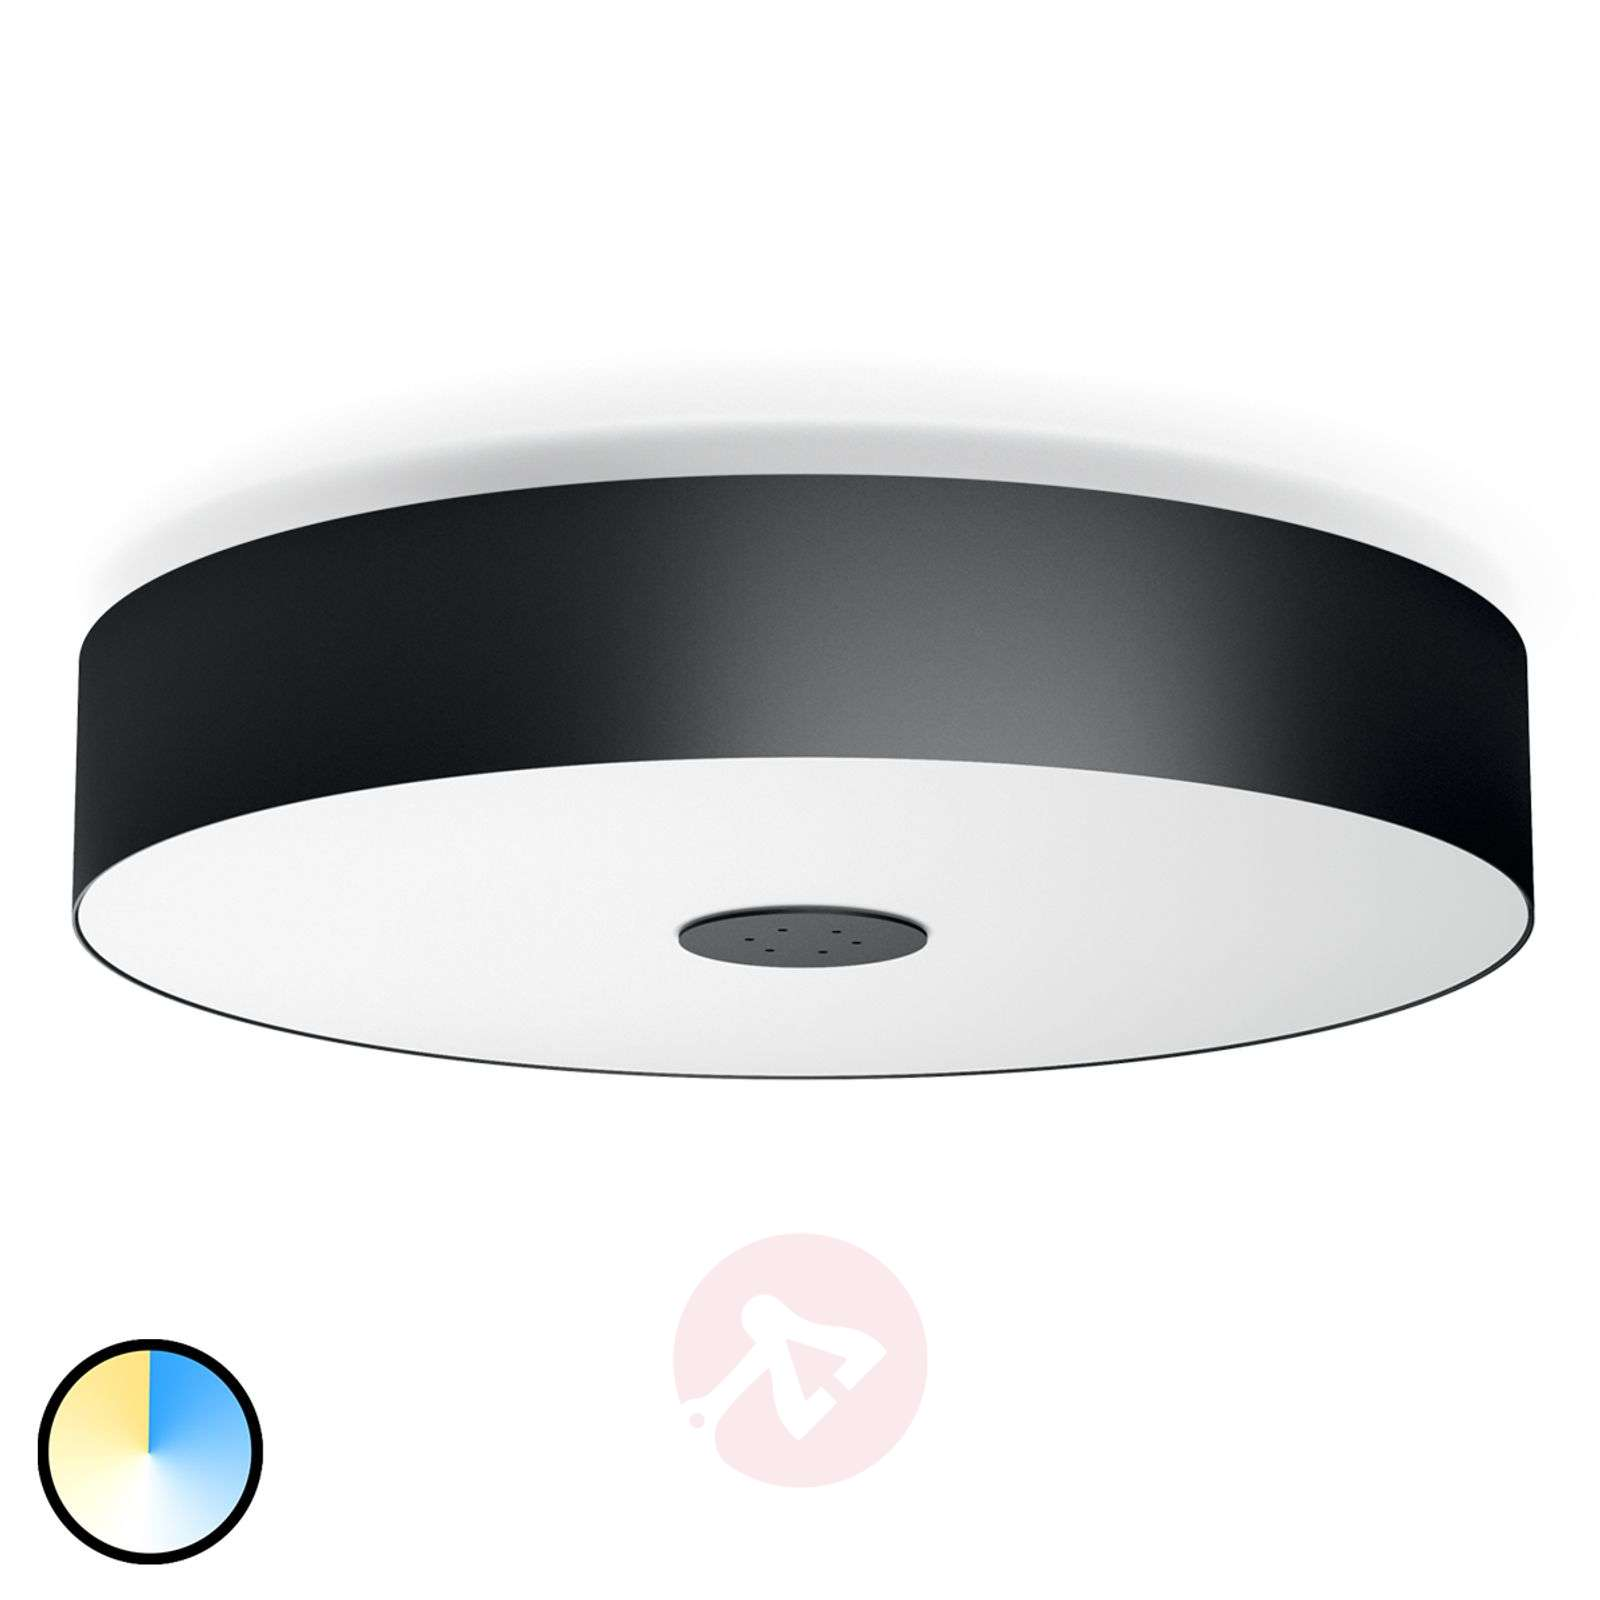 Remote Control Philips Hue Led Ceiling Light Fair Lights